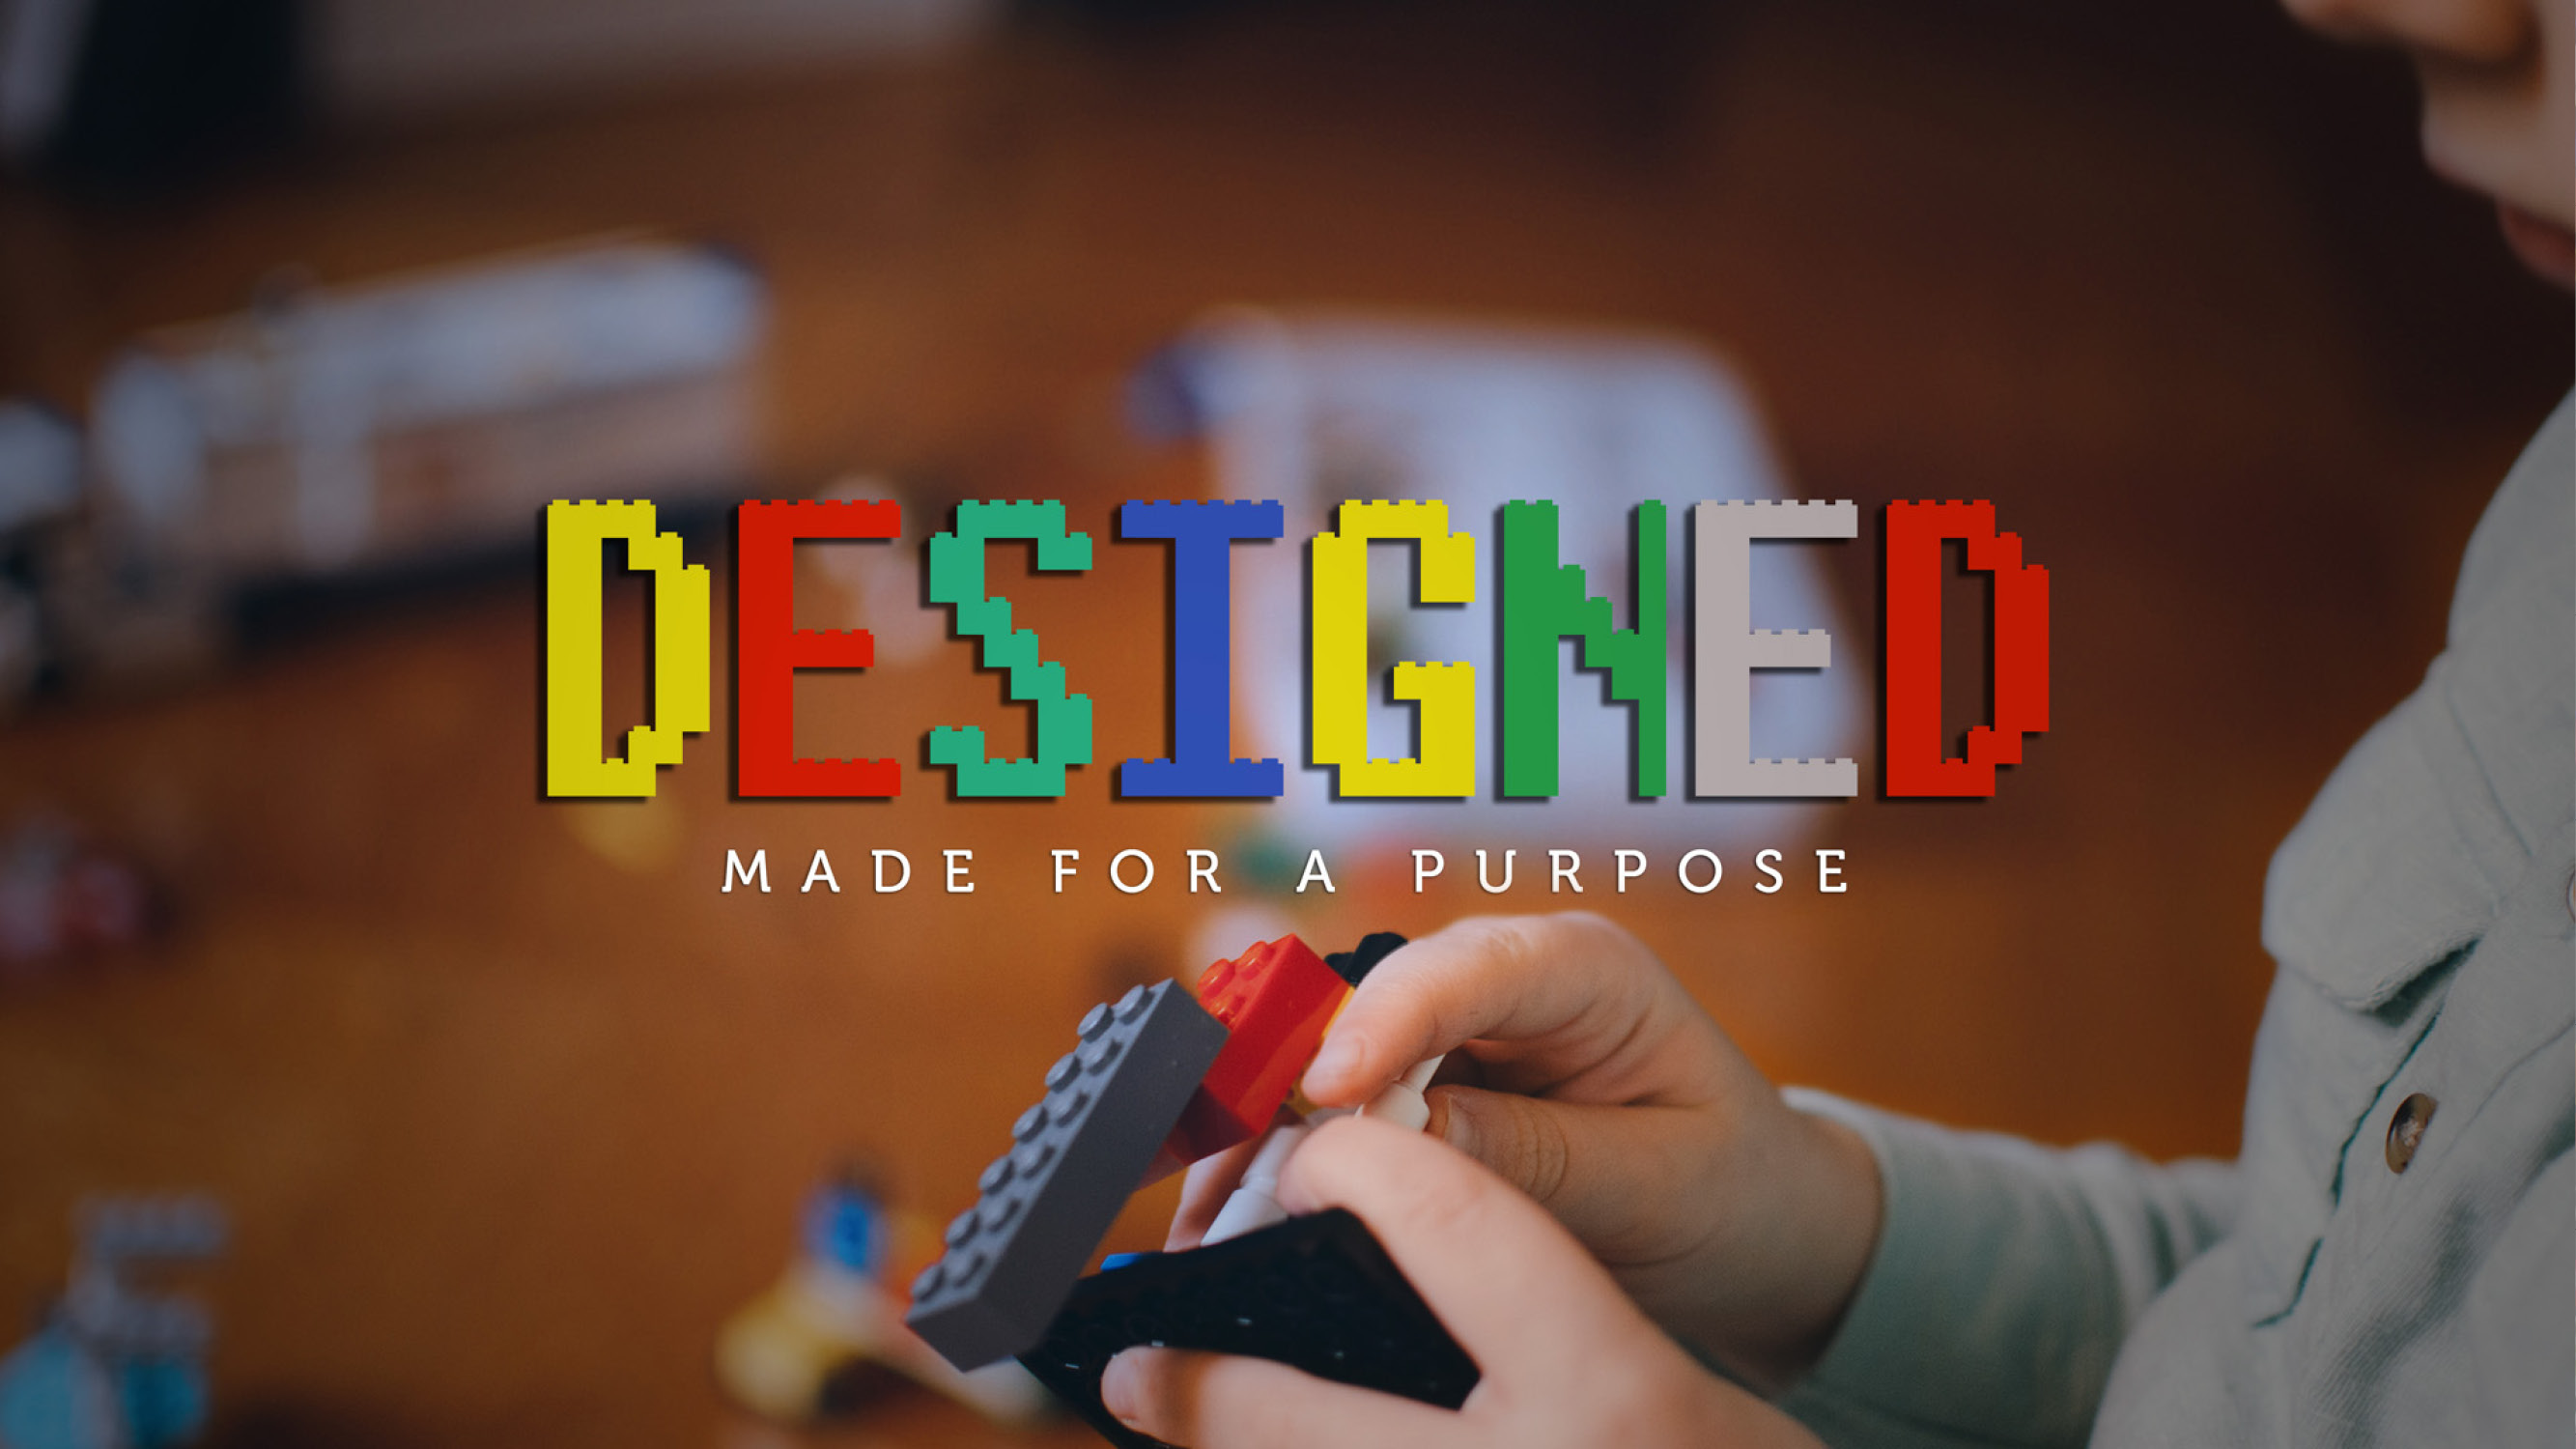 DESIGNED / Made For a Purpose